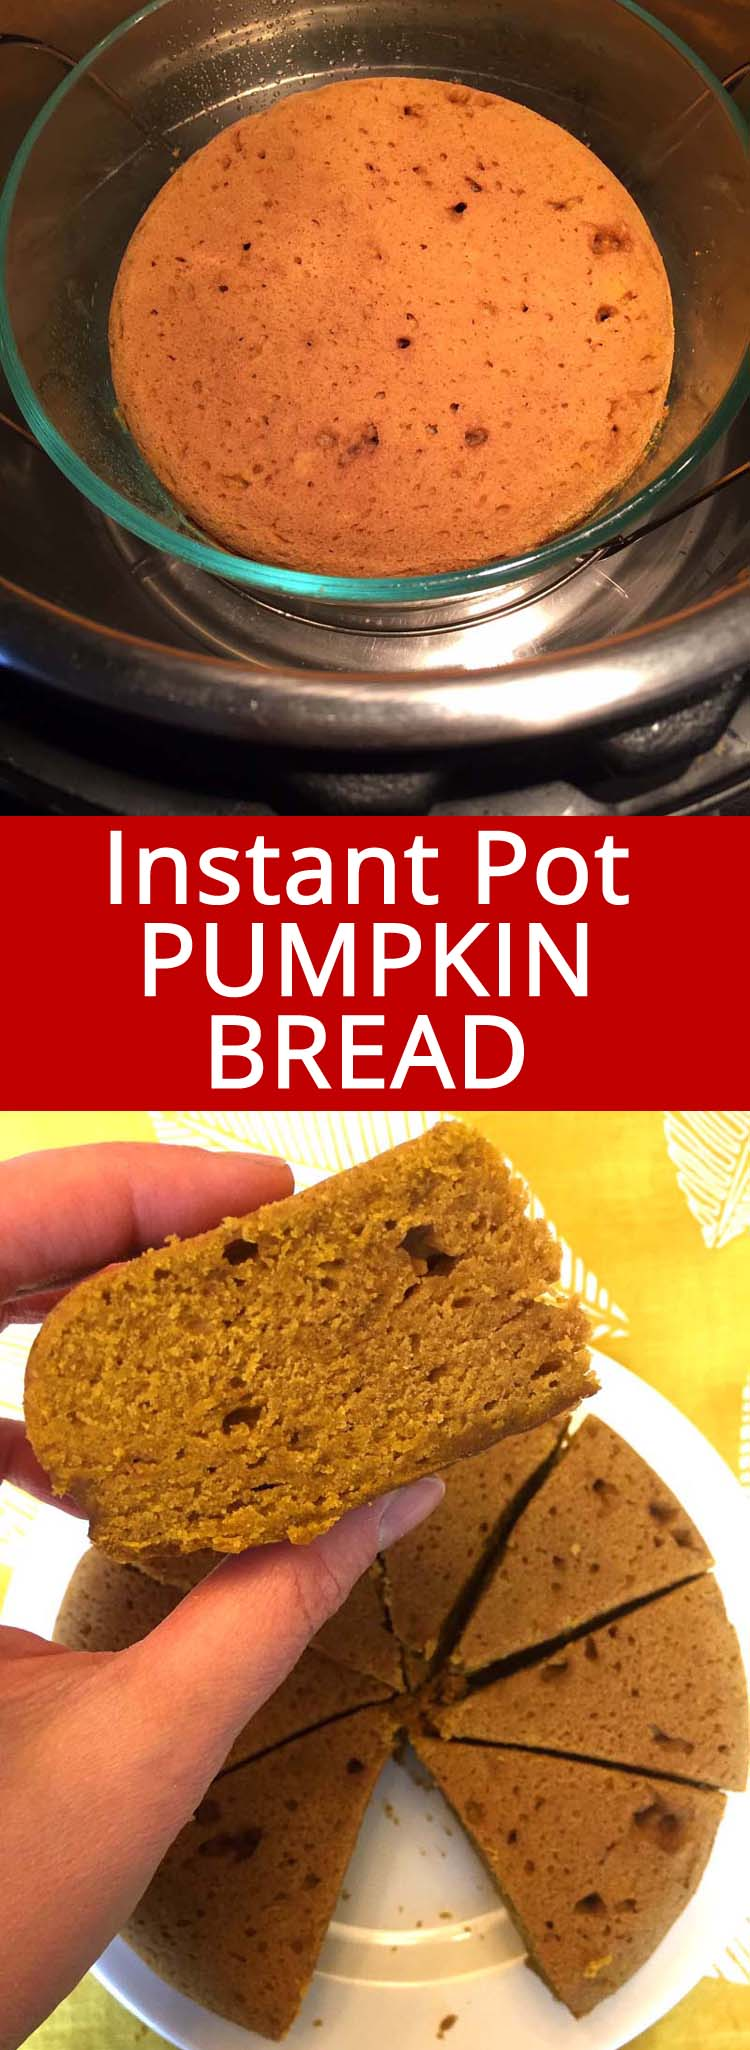 This Instant Pot pumpkin bread is amazing! So easy to make in the Instant Pot! I love this pumpkin bread!